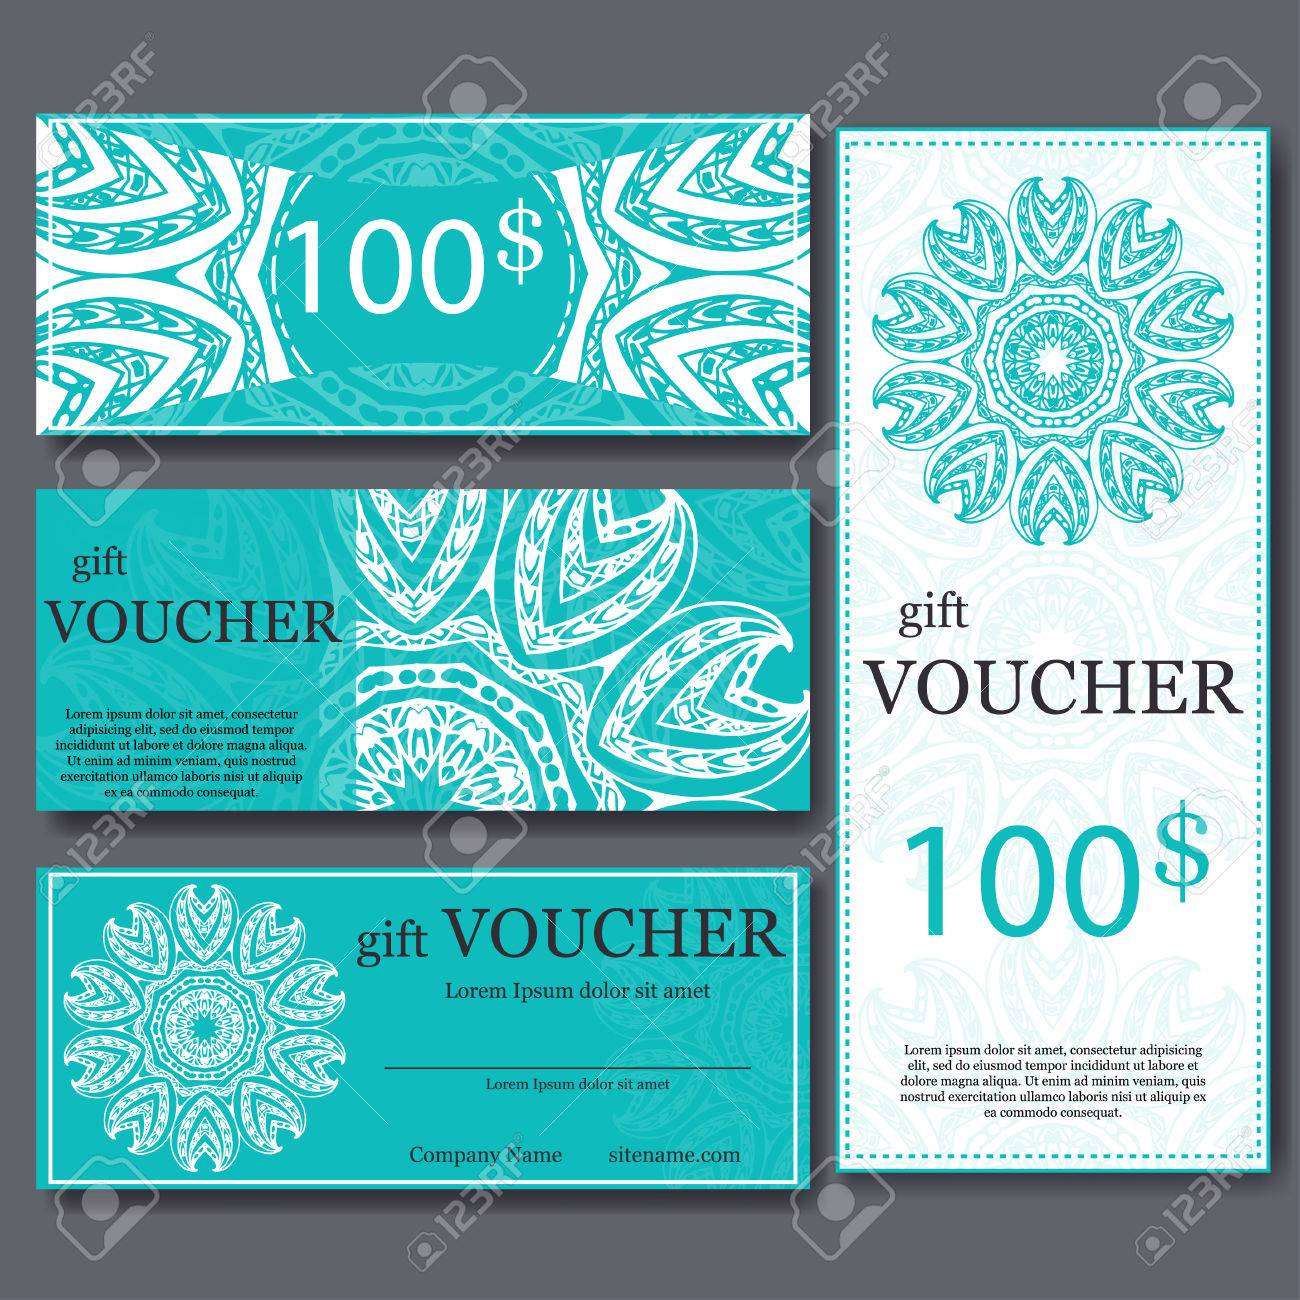 Gift voucher template with mandala design certificate for sport gift voucher template with mandala design certificate for sport center magazine or etc alramifo Images